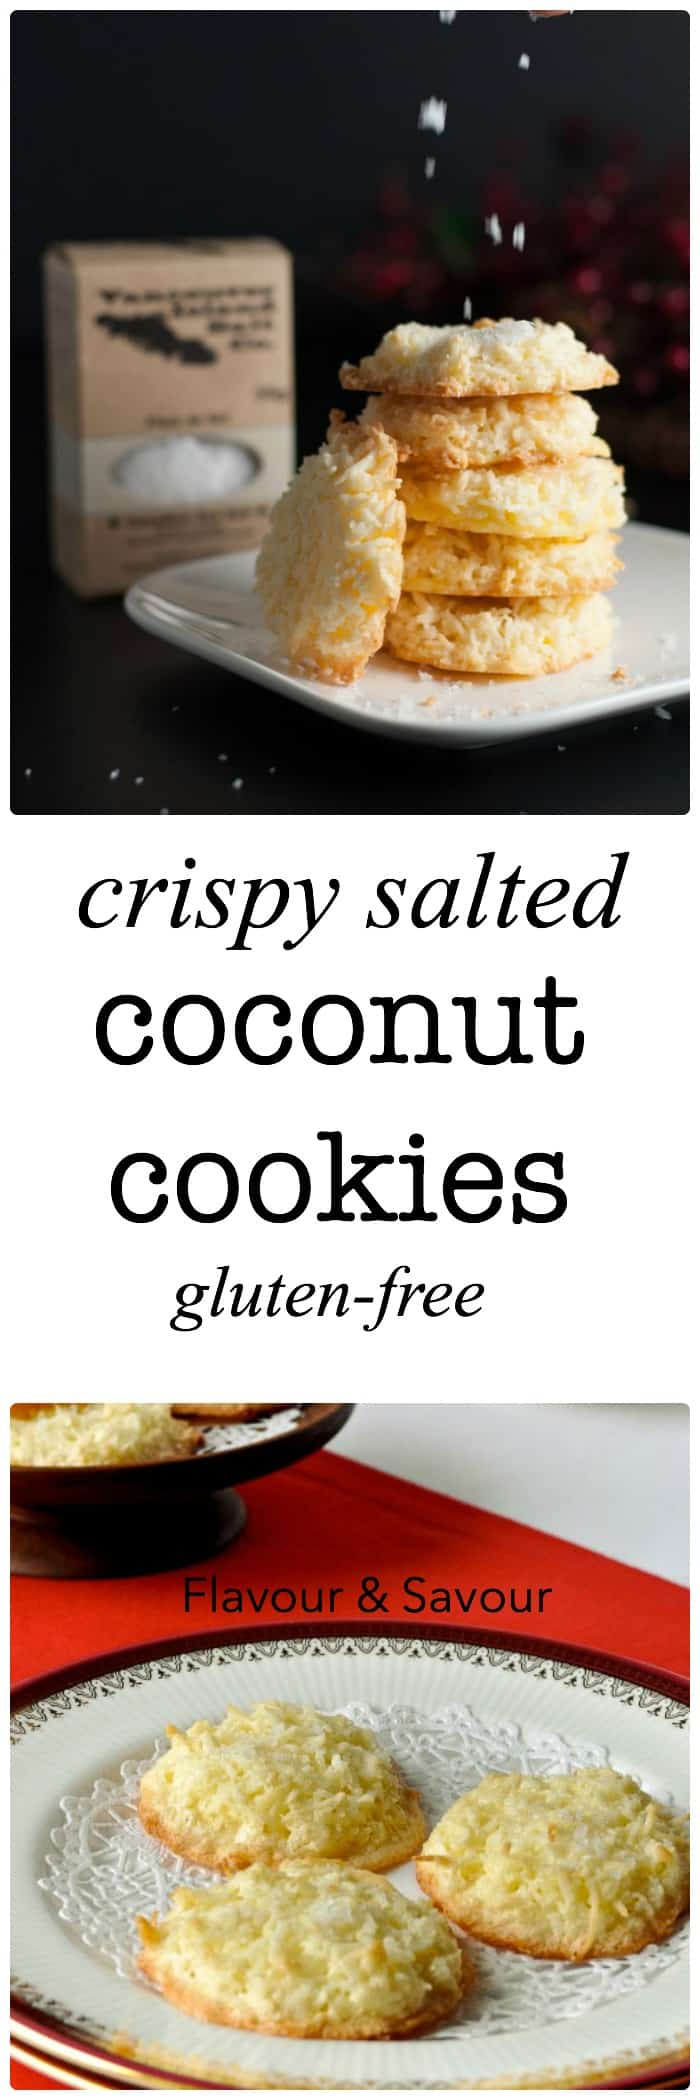 These gluten-free Crispy Salted Coconut Cookies are topped with a light dusting of sea salt. They're the first ones to disappear from the cookie tray! Make ahead and freeze for unexpected company.